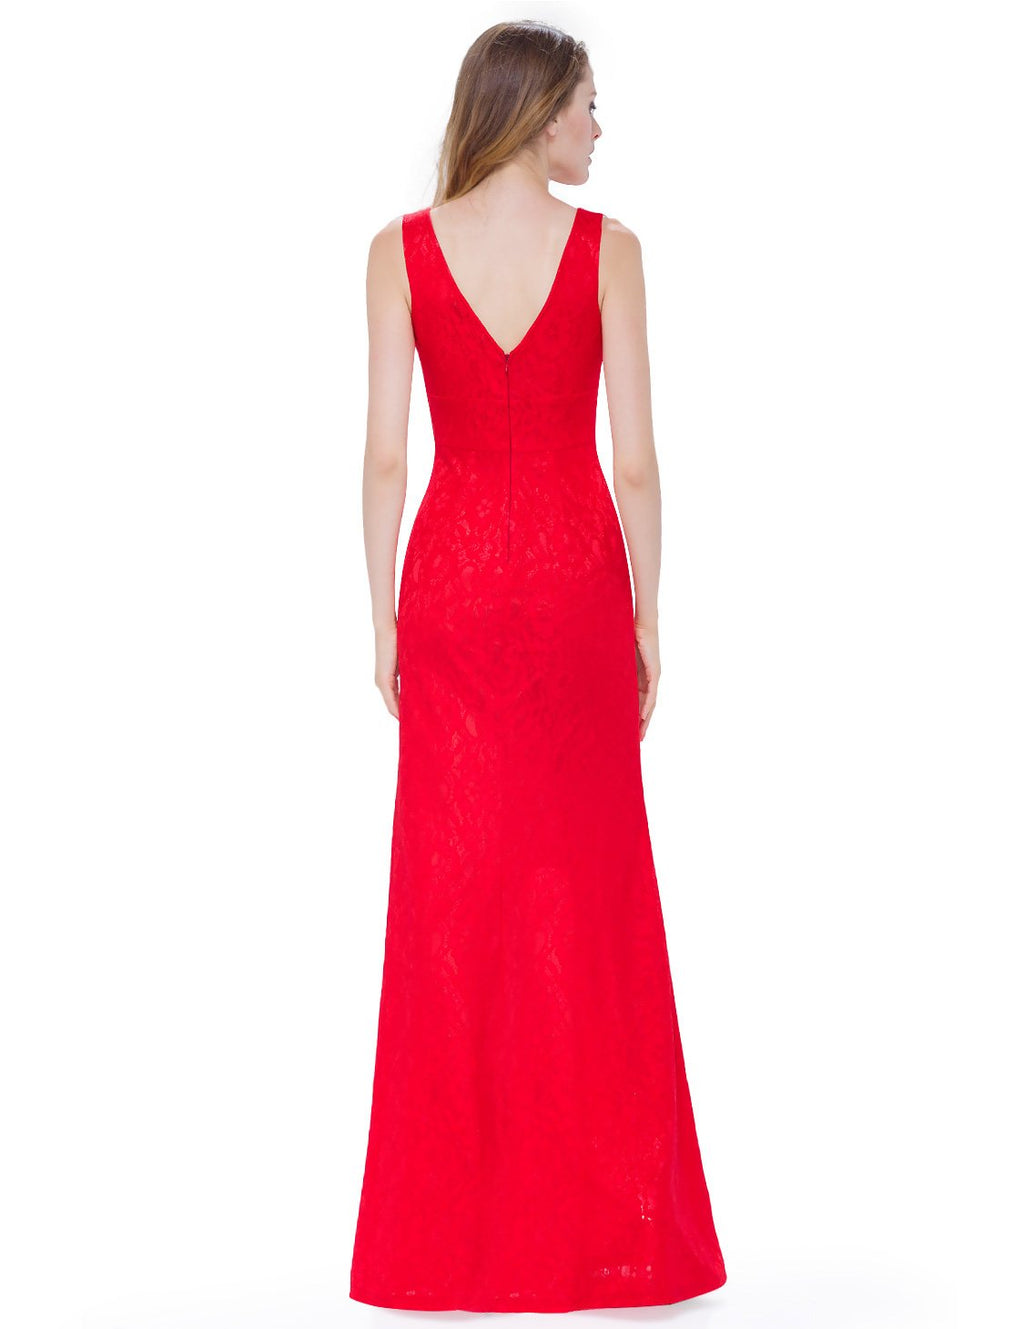 Sexy Neckline Simple Long Dress Red